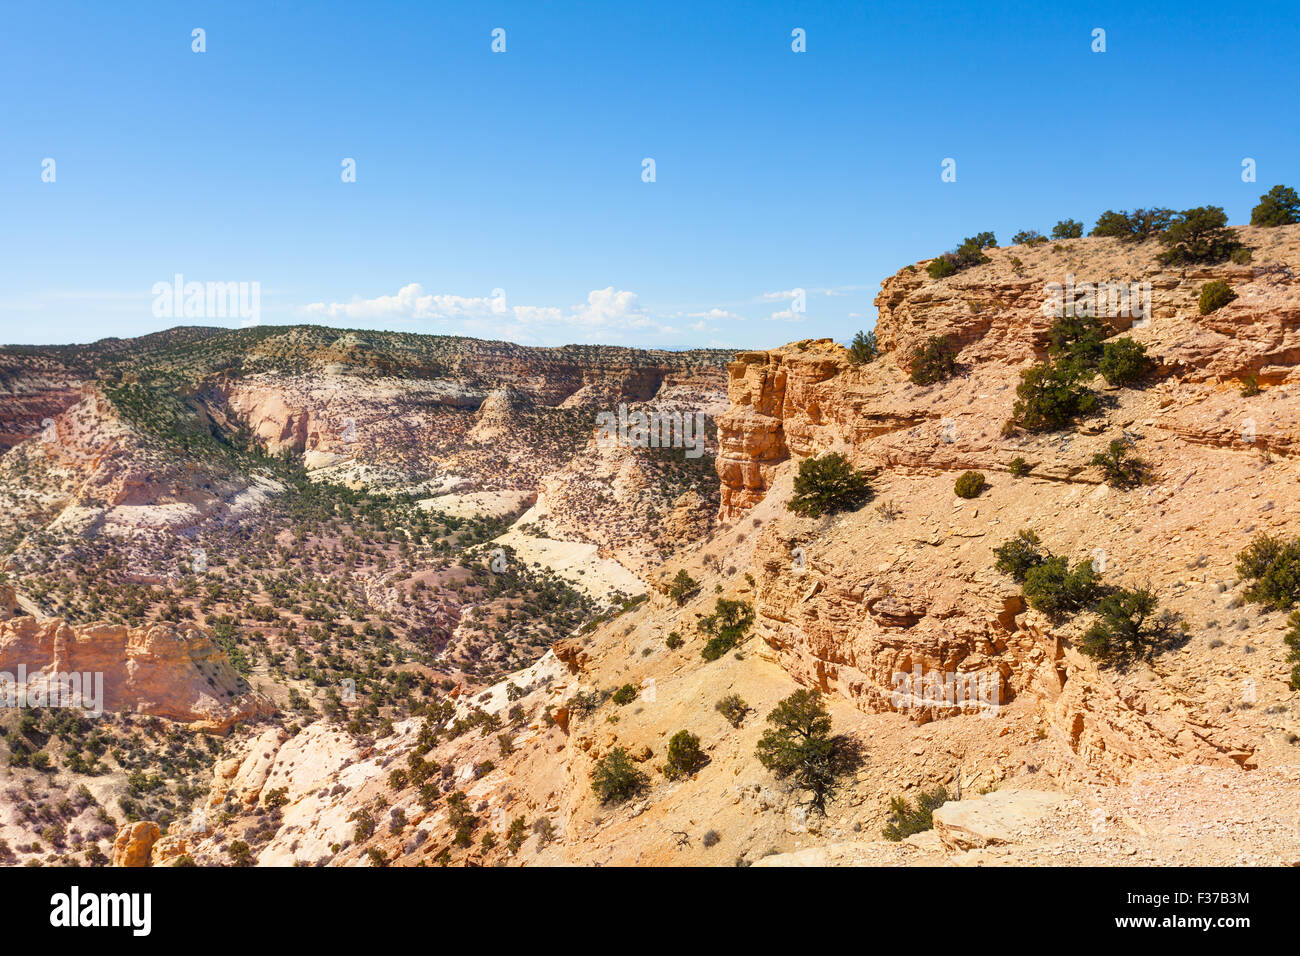 Stoned hills in Devil's Canyon Emery County - Stock Image